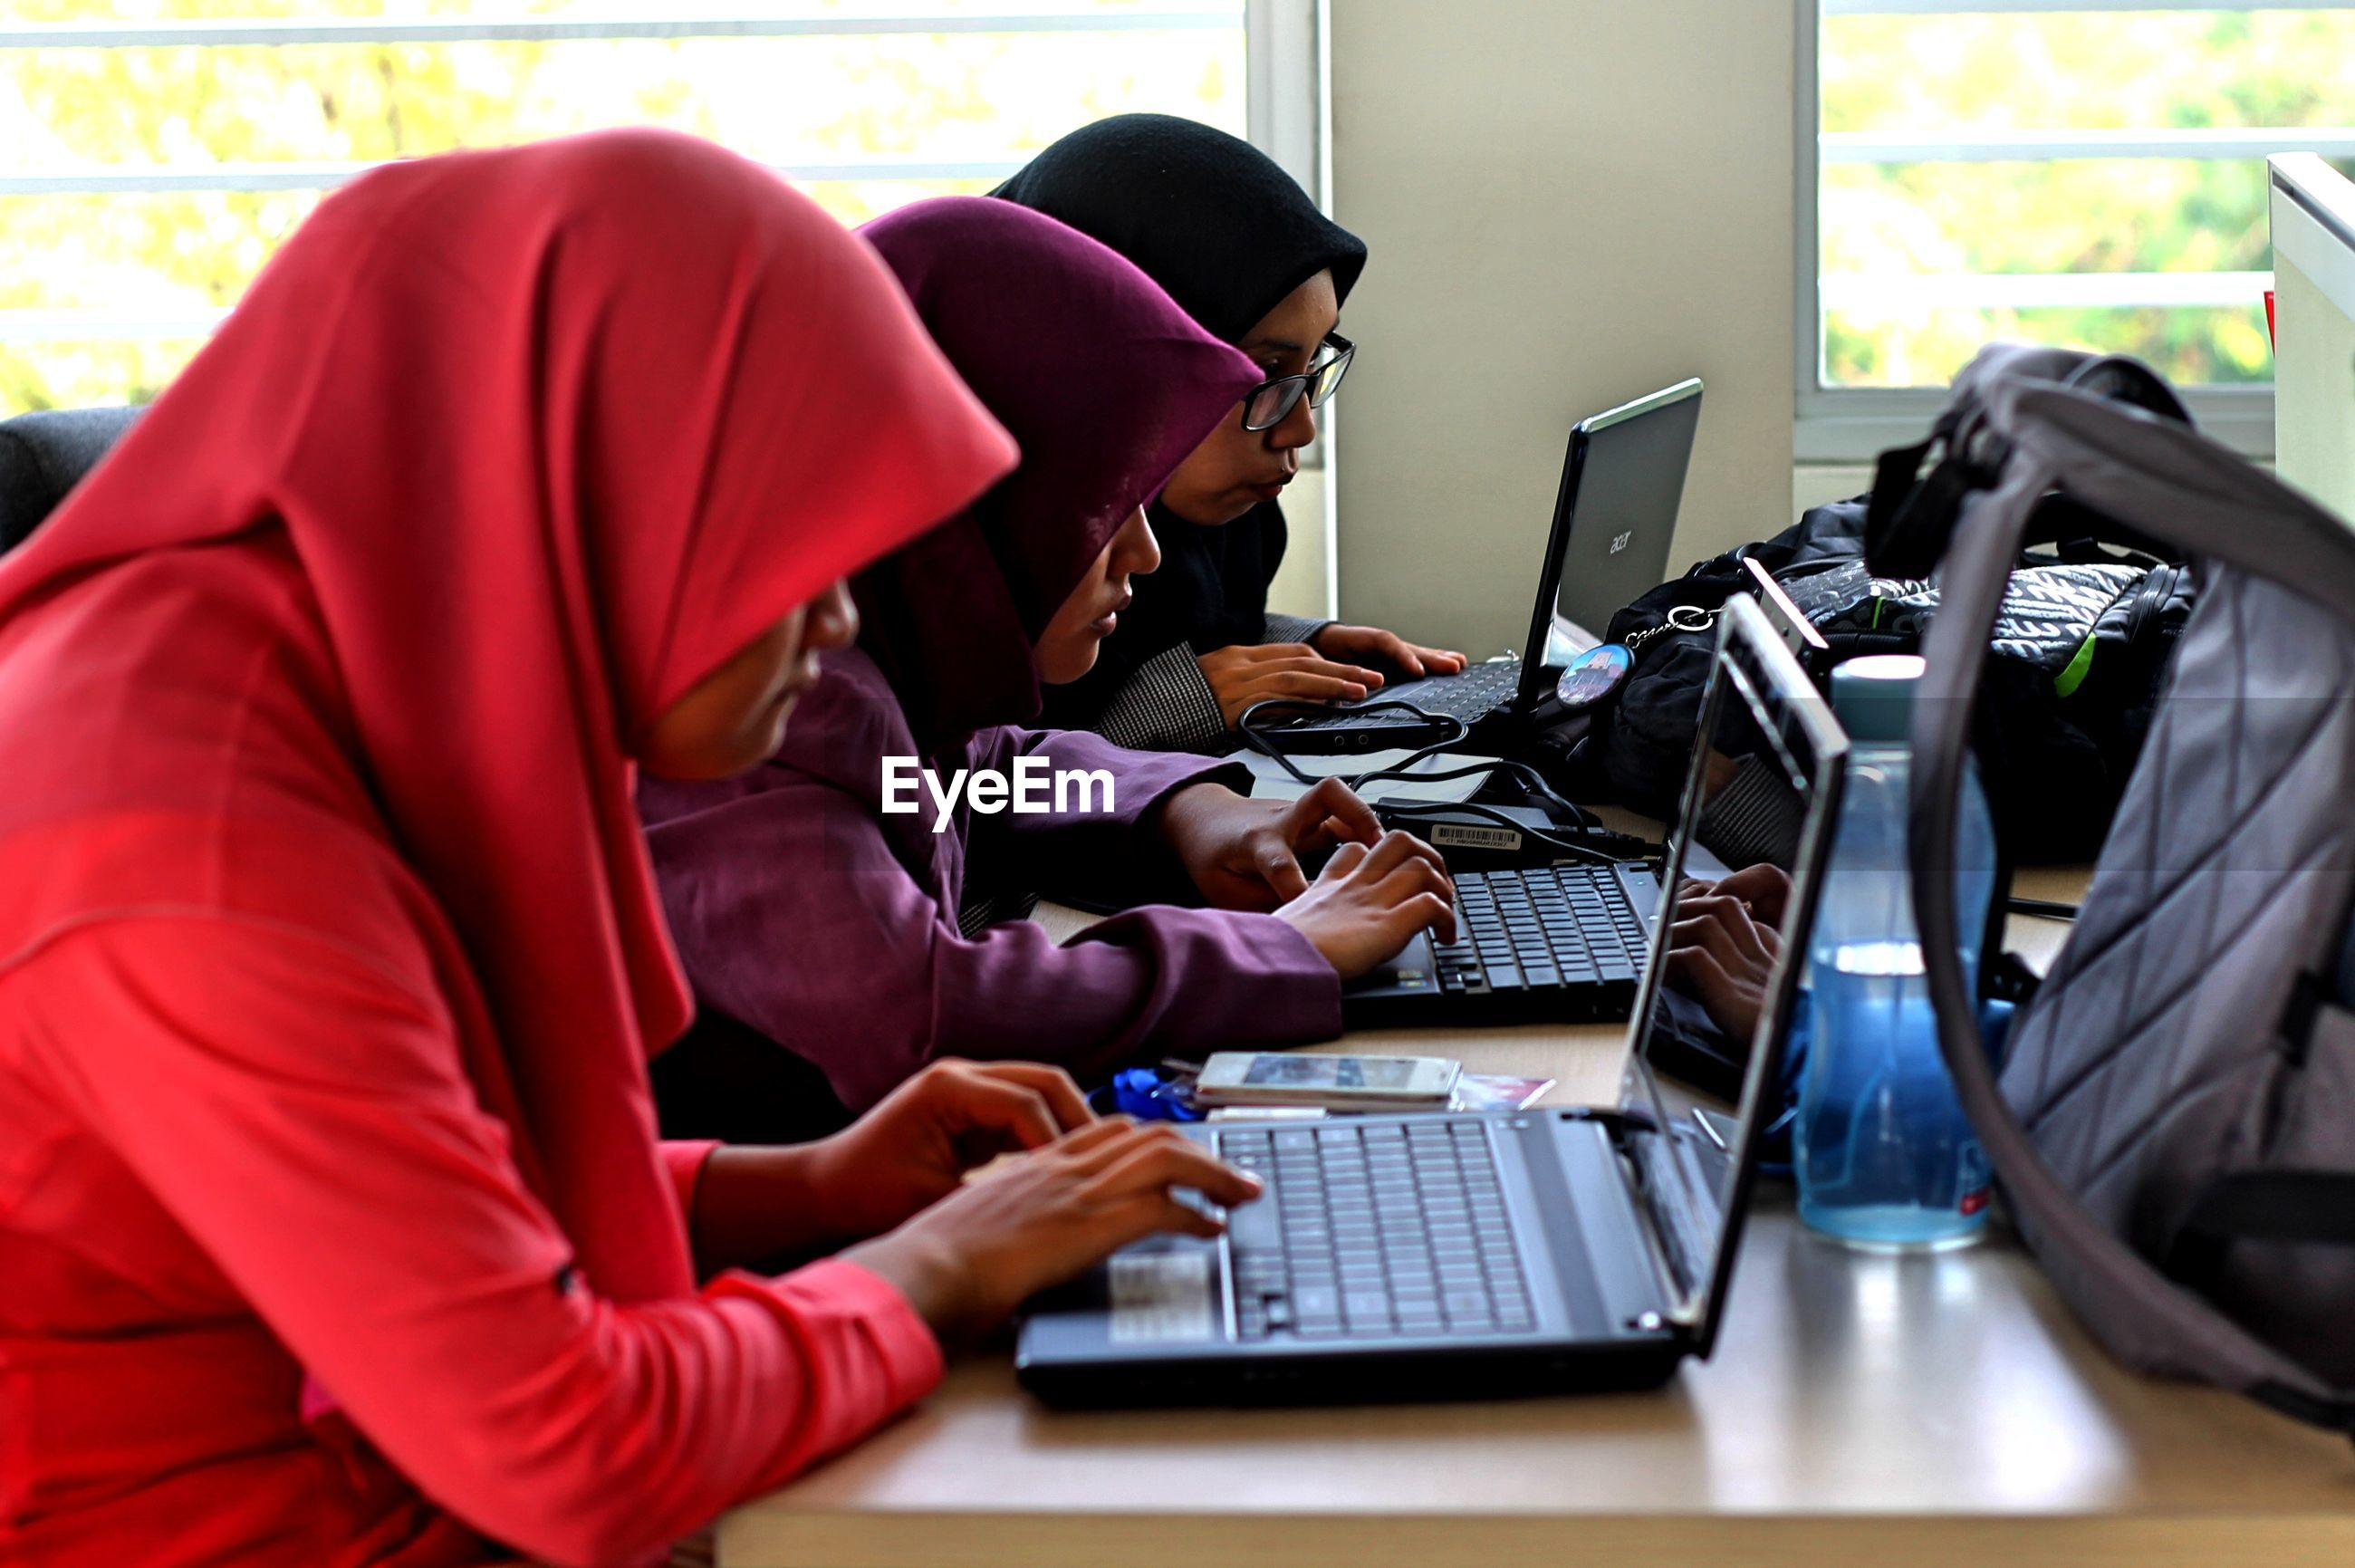 High angle view of young women using laptops on table